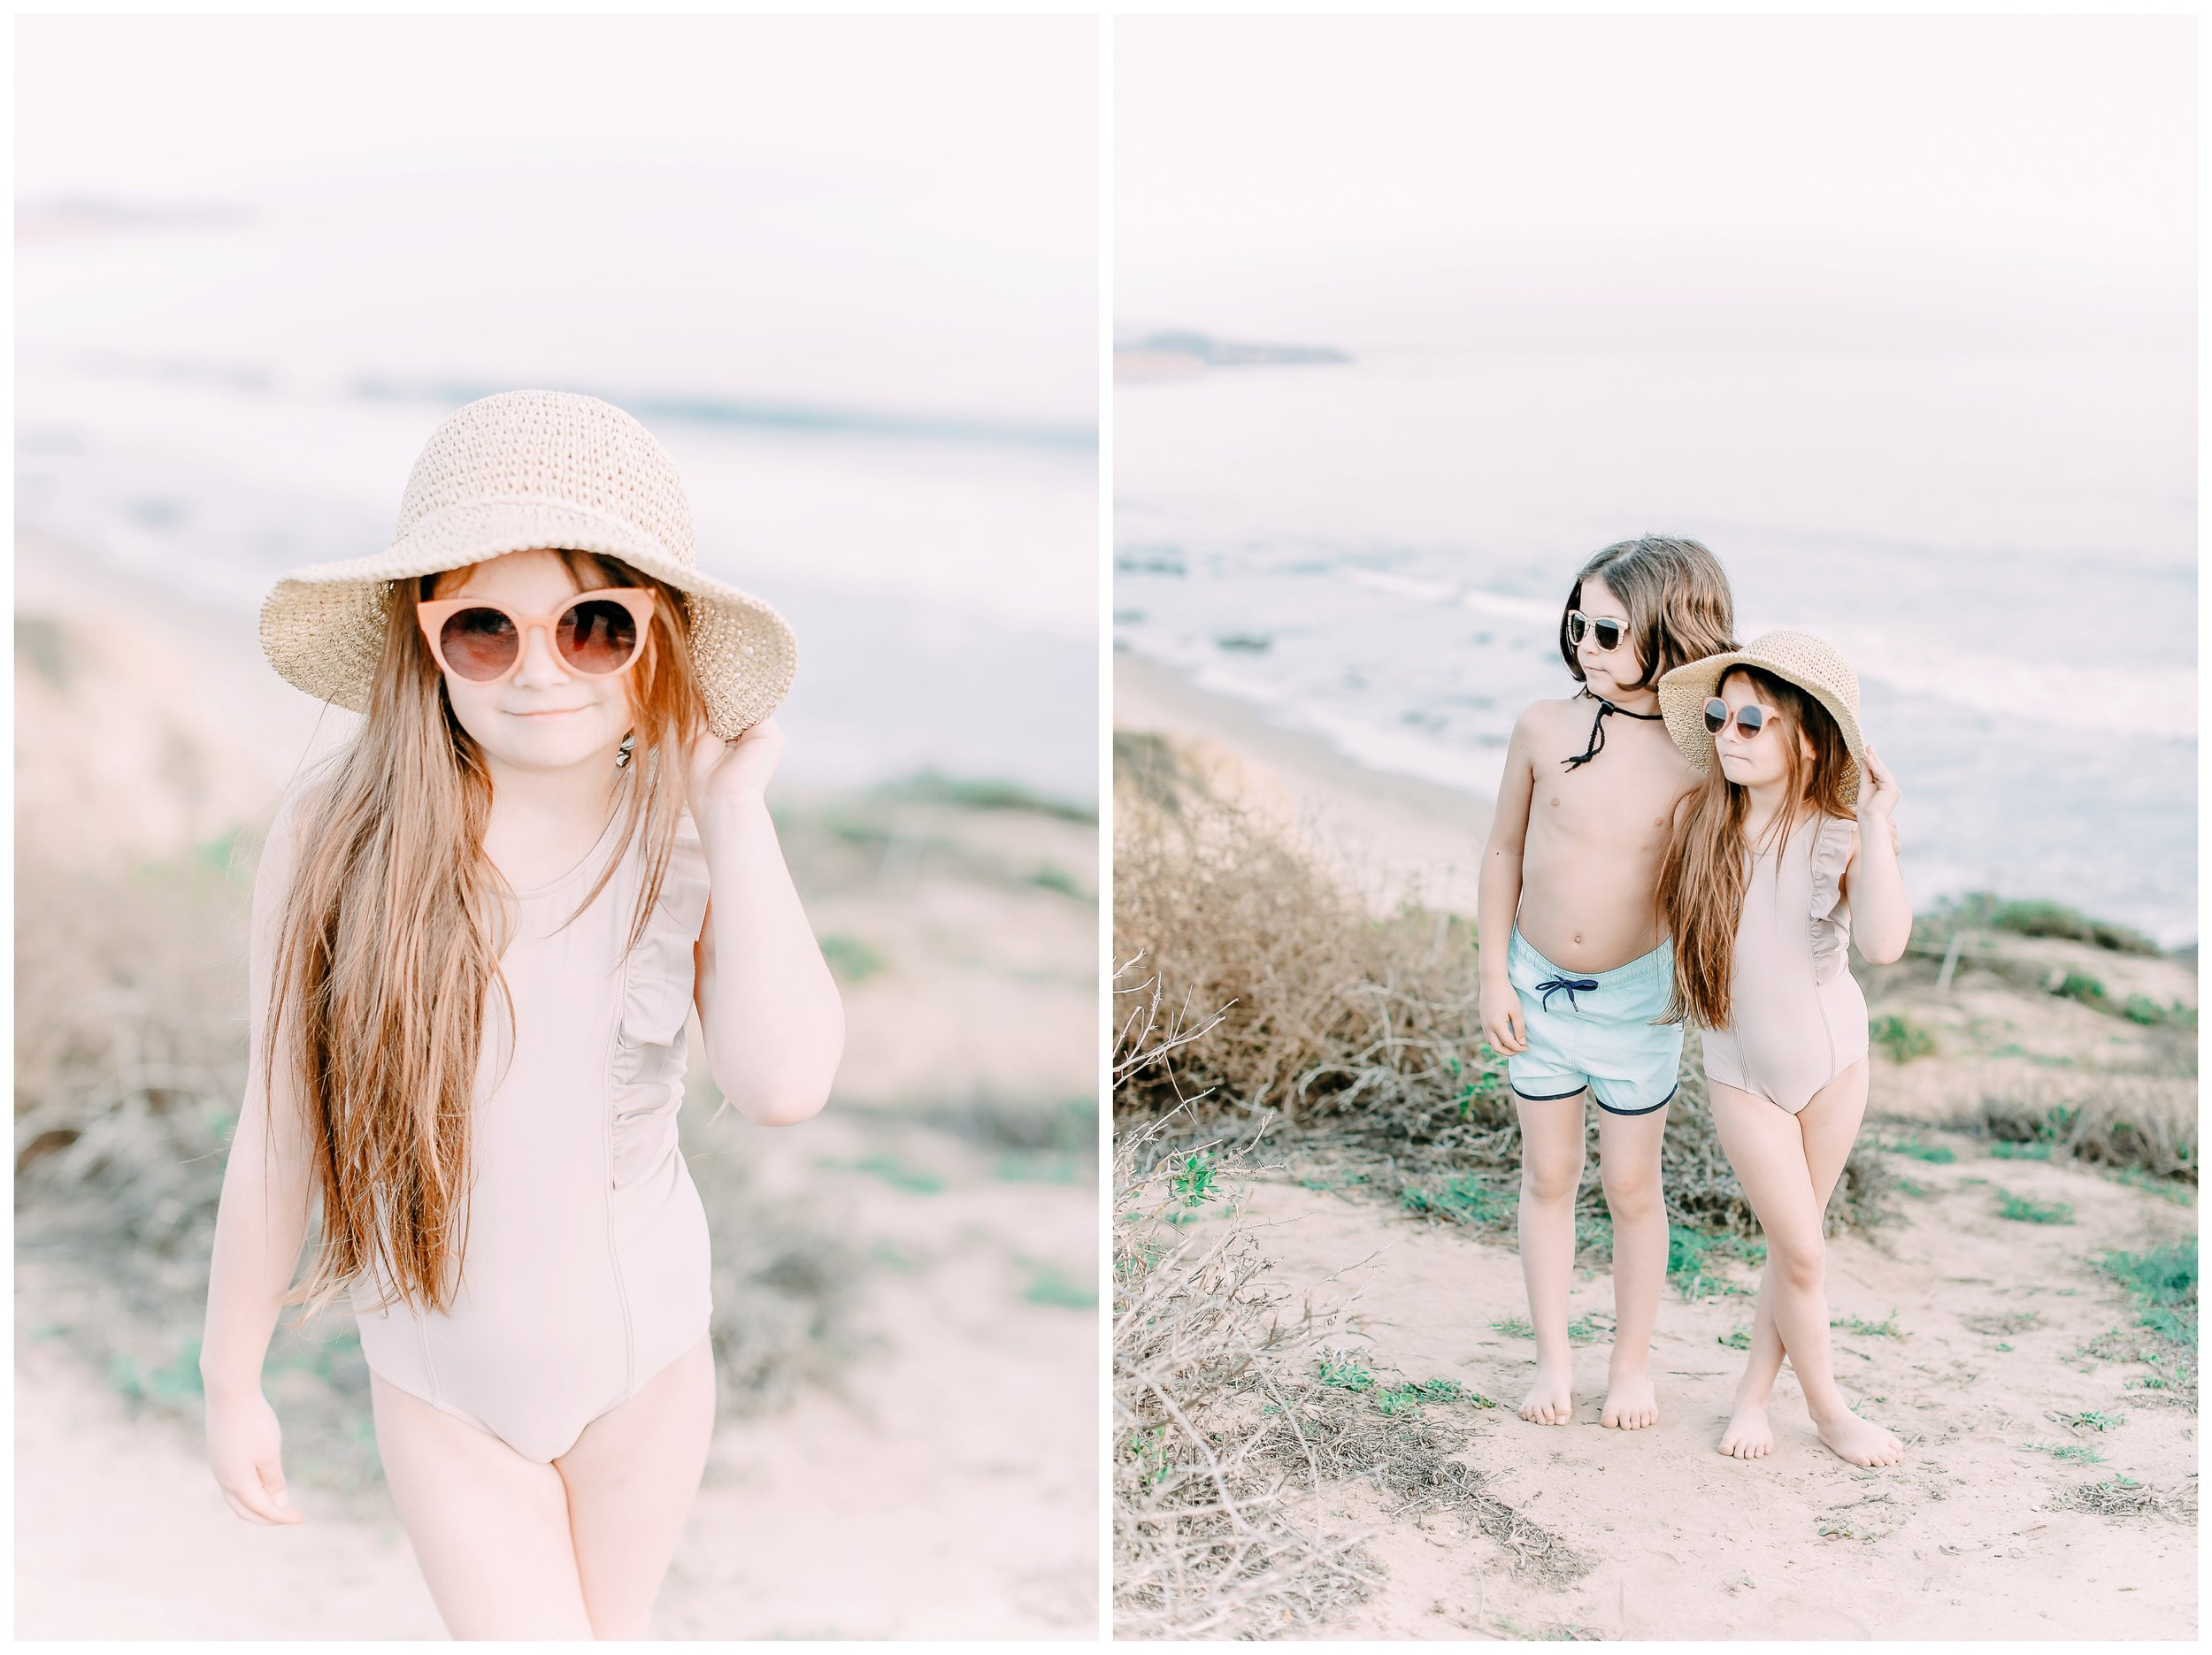 Crystal-Cove-State-Beach-Motherhood- Session-Crystal-Cove-Newport-Beach-Family-Photographer-Crystal-Cove-Minnow-Swim-Cori-Kleckner-Photography-Orange-County-Vacation-Family-Photos-Session-_0845.jpg